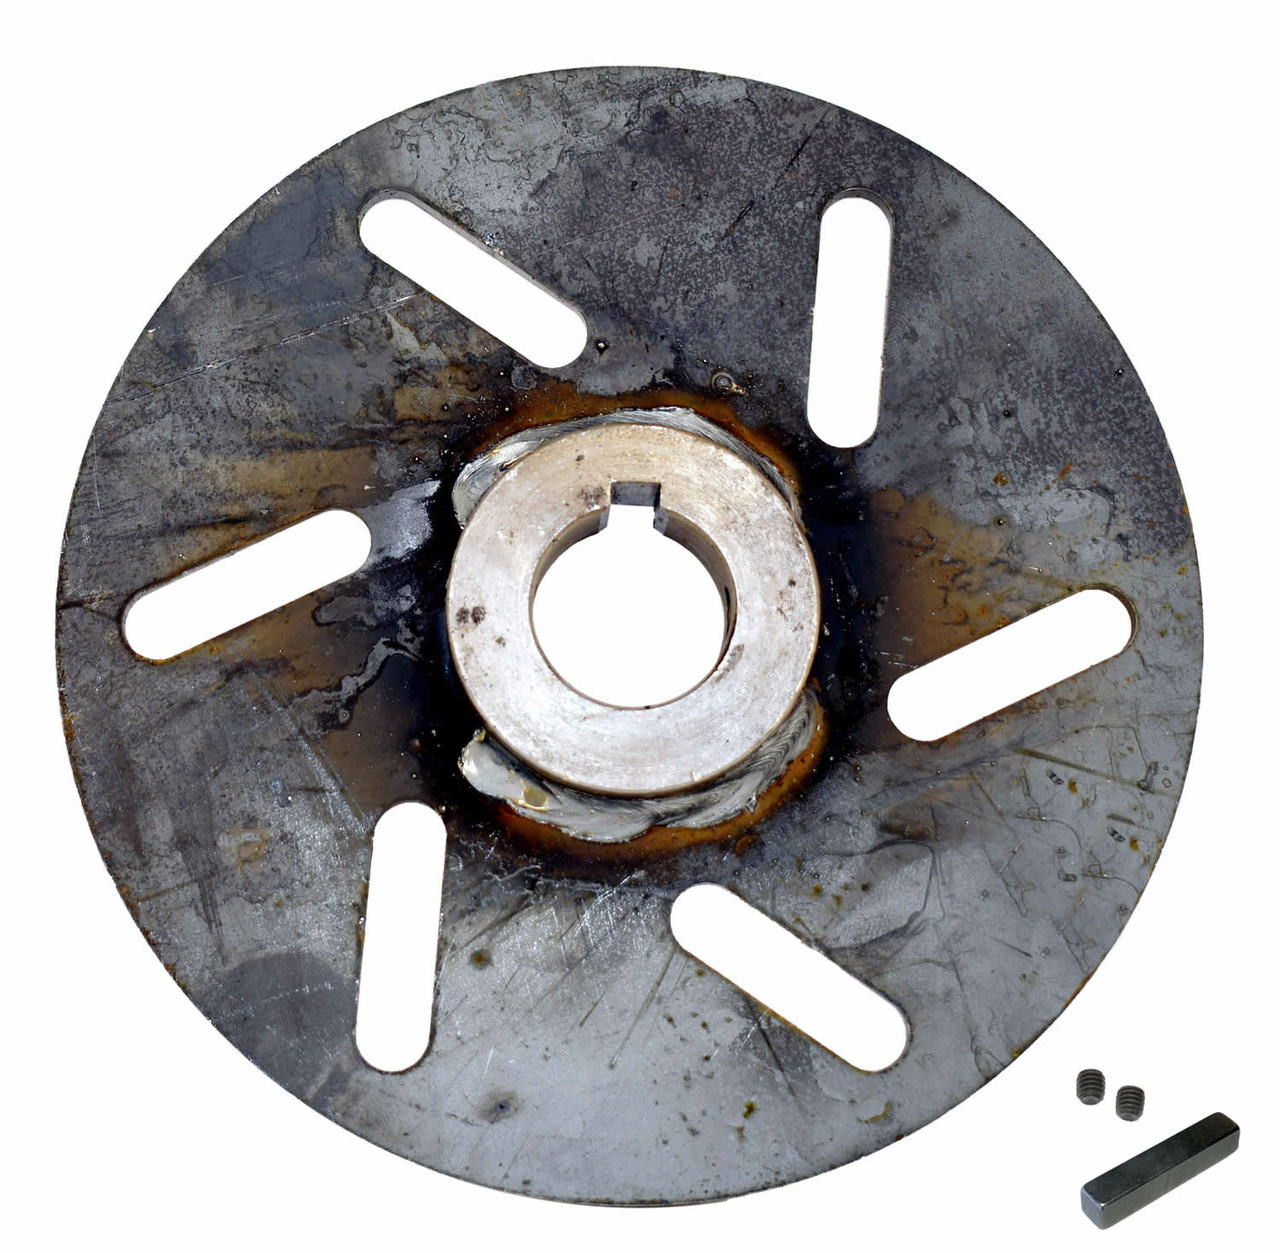 Go Kart Mechanical Brake Disc Kit- 9511,9598,TH1000